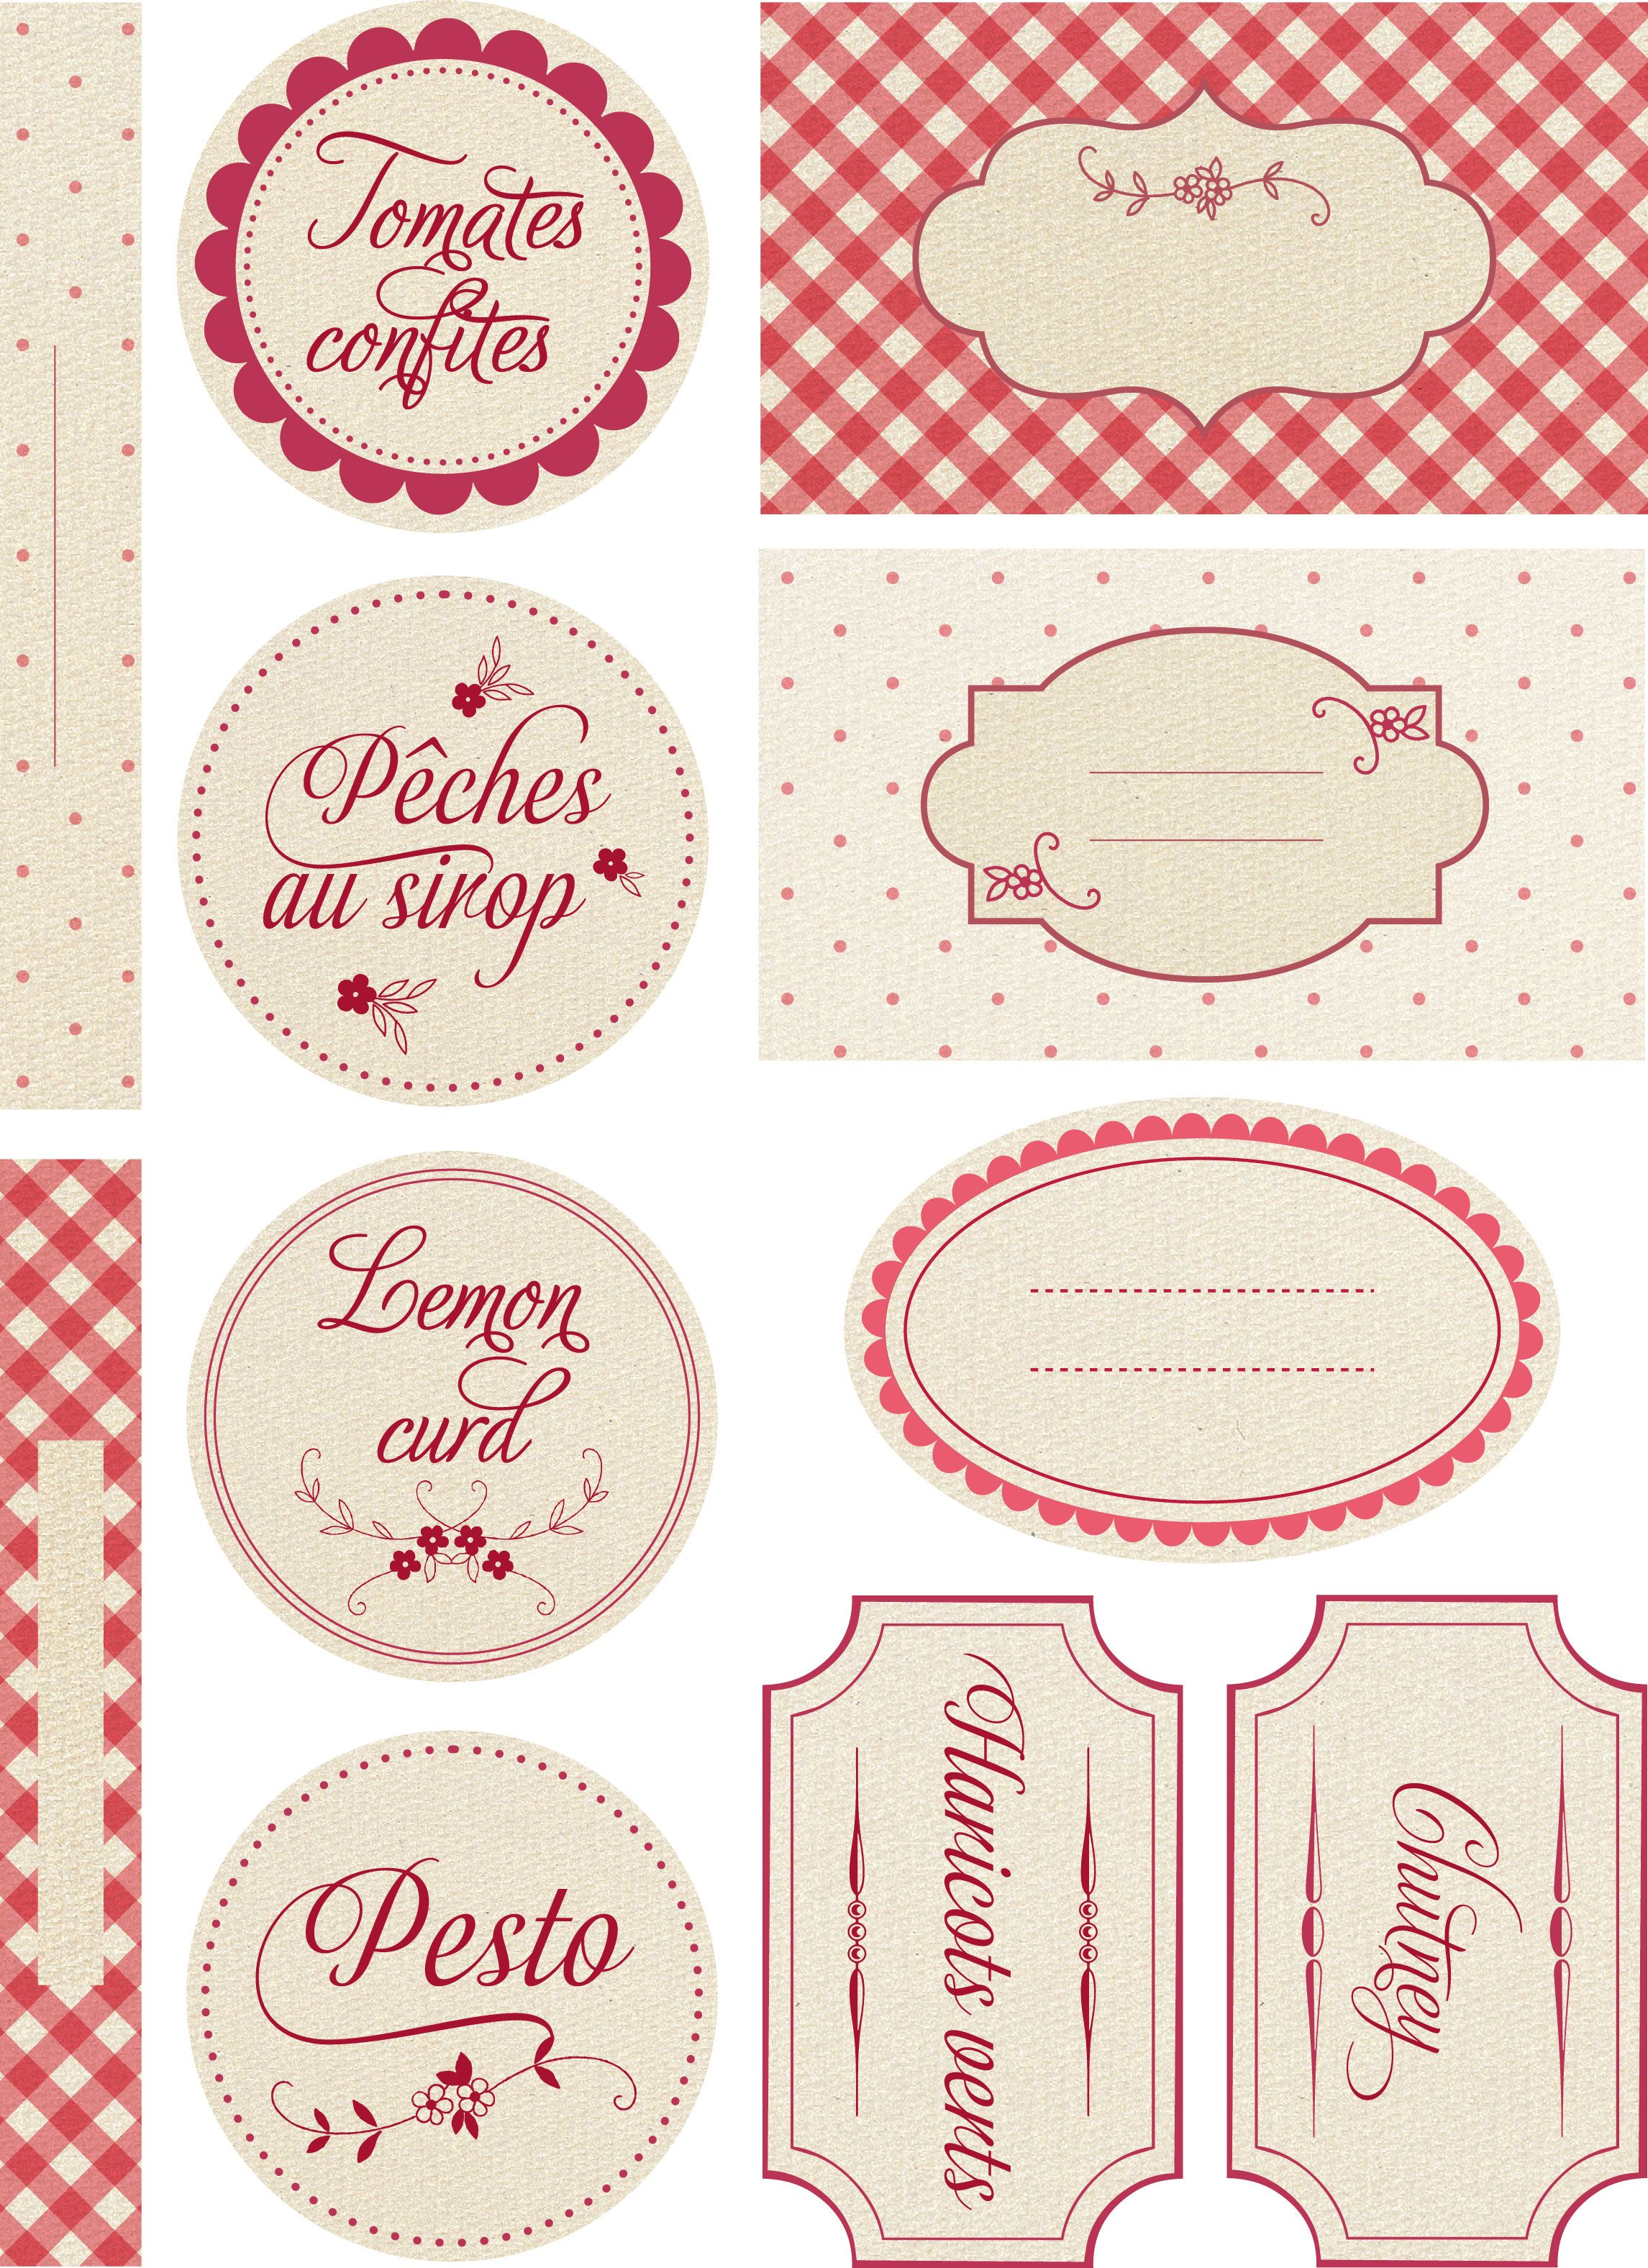 31 Ways To Use Labels Tags This Holiday Etiquette Scrapbooks